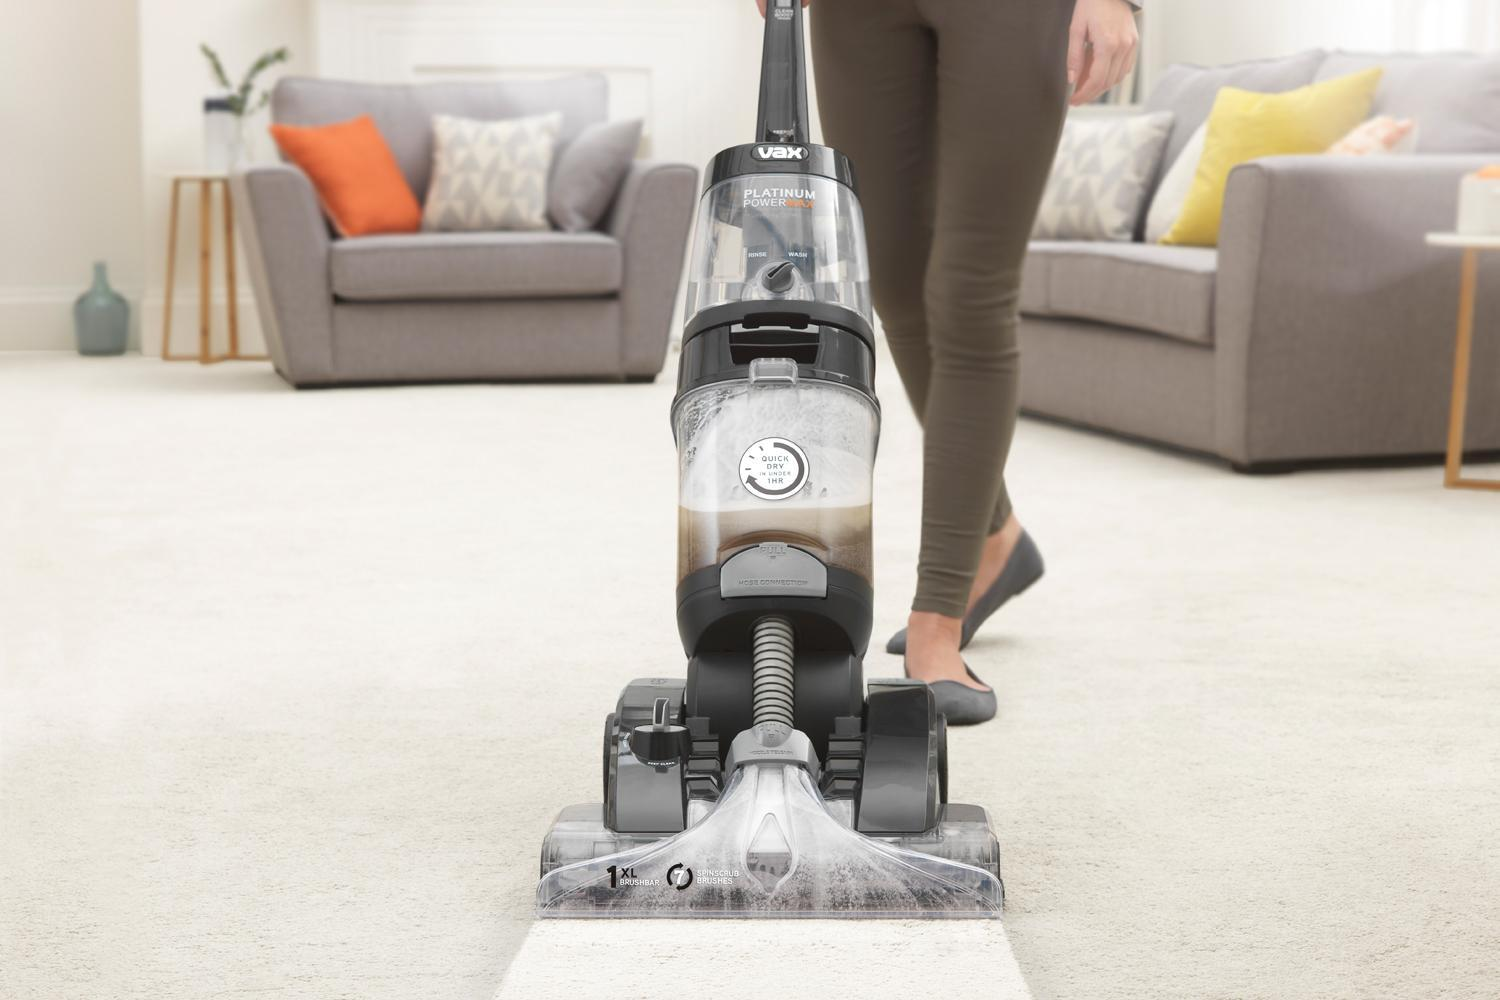 Carpet Cleaner Market | Carpet Cleaning Machine Market | Industry Outlook and Growth by 2024